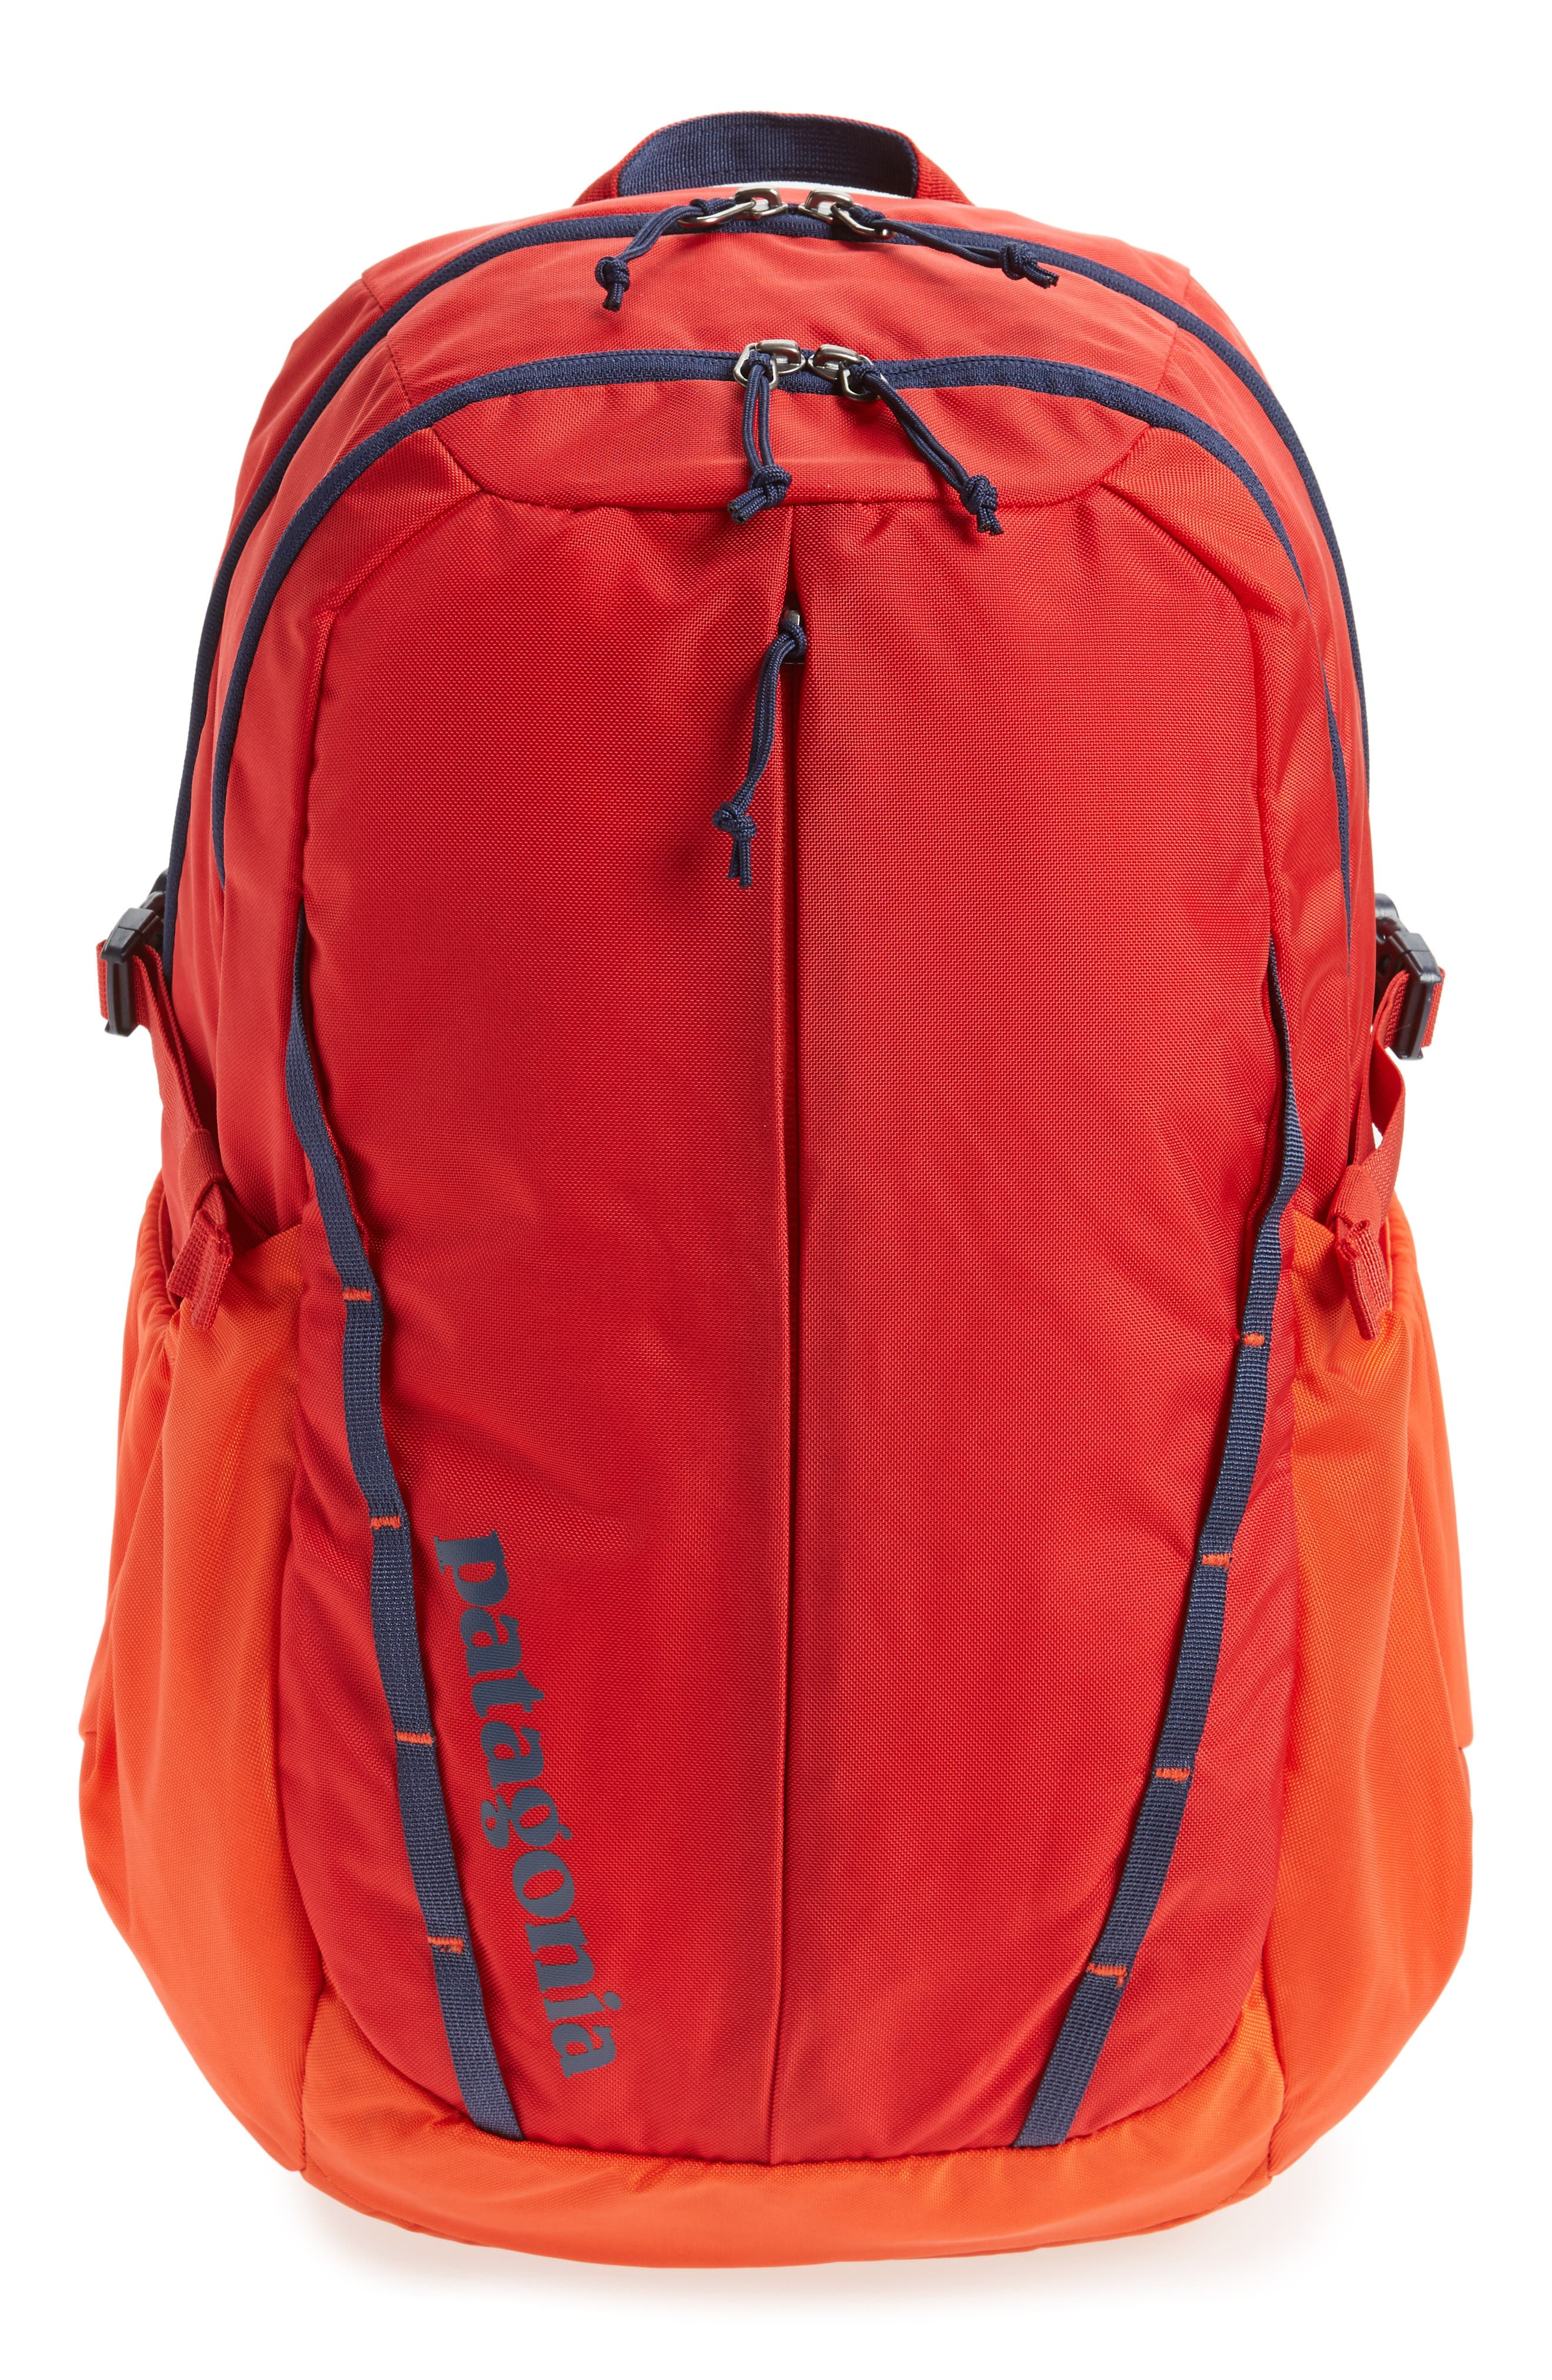 28L Refugio Backpack,                         Main,                         color, Paintbrush Red